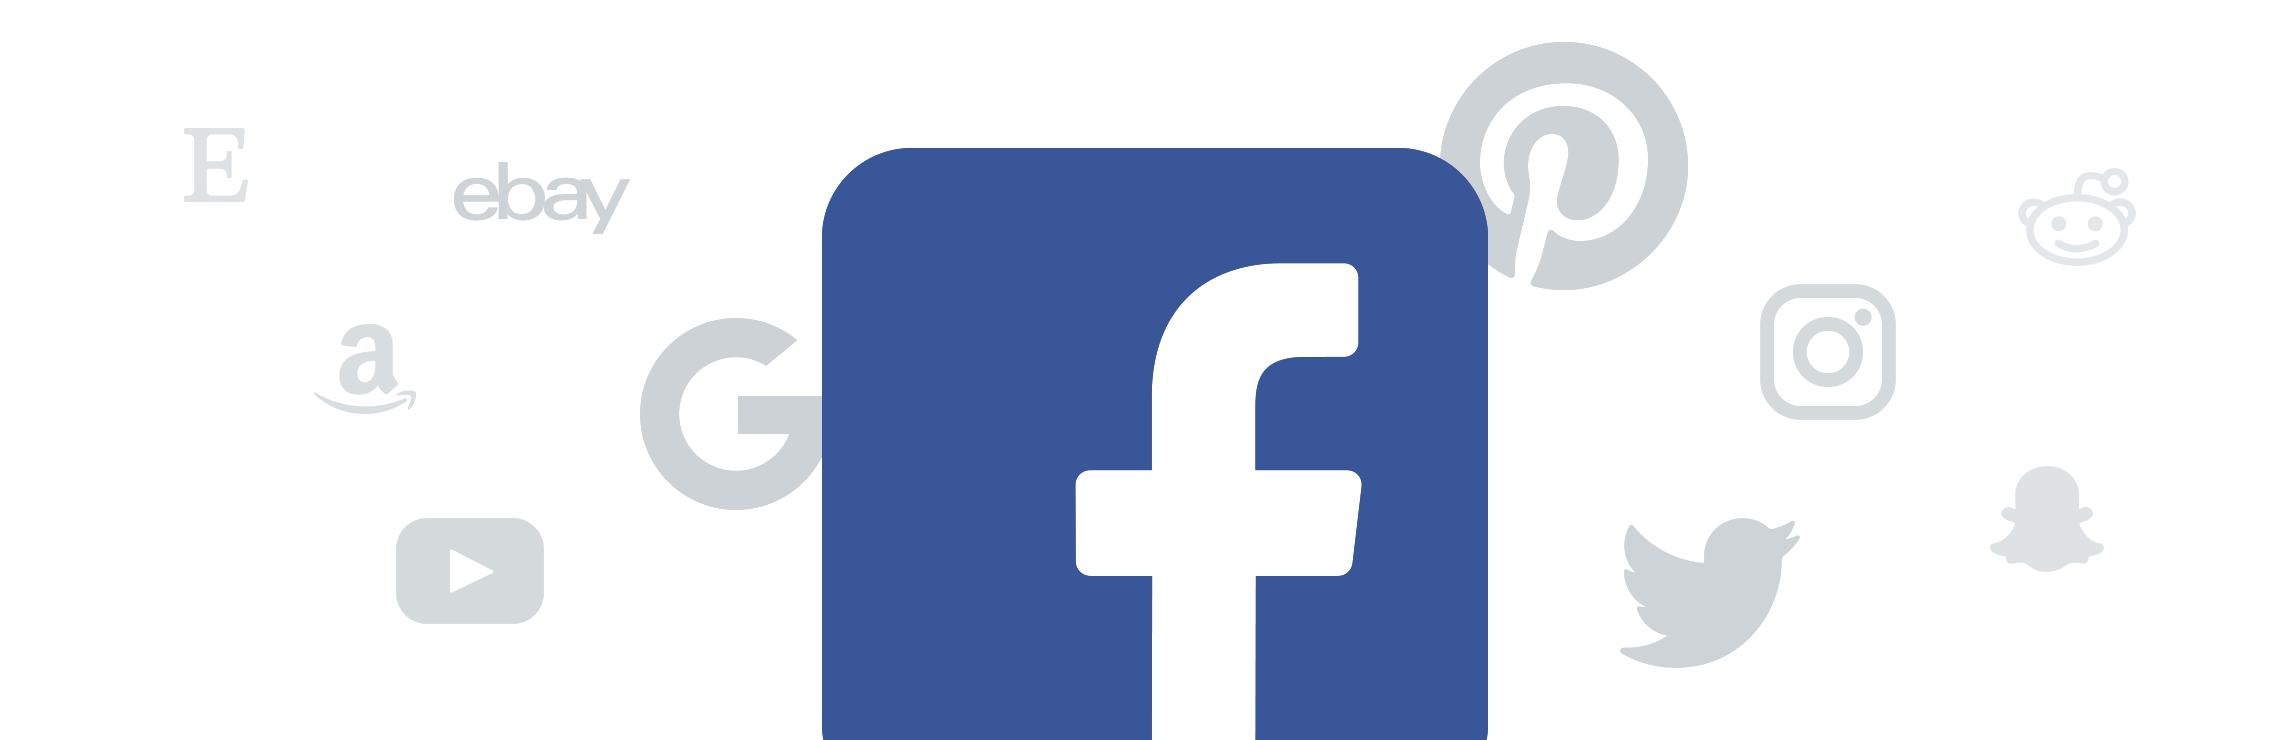 Facebook clipart ocon. Learn how to sell